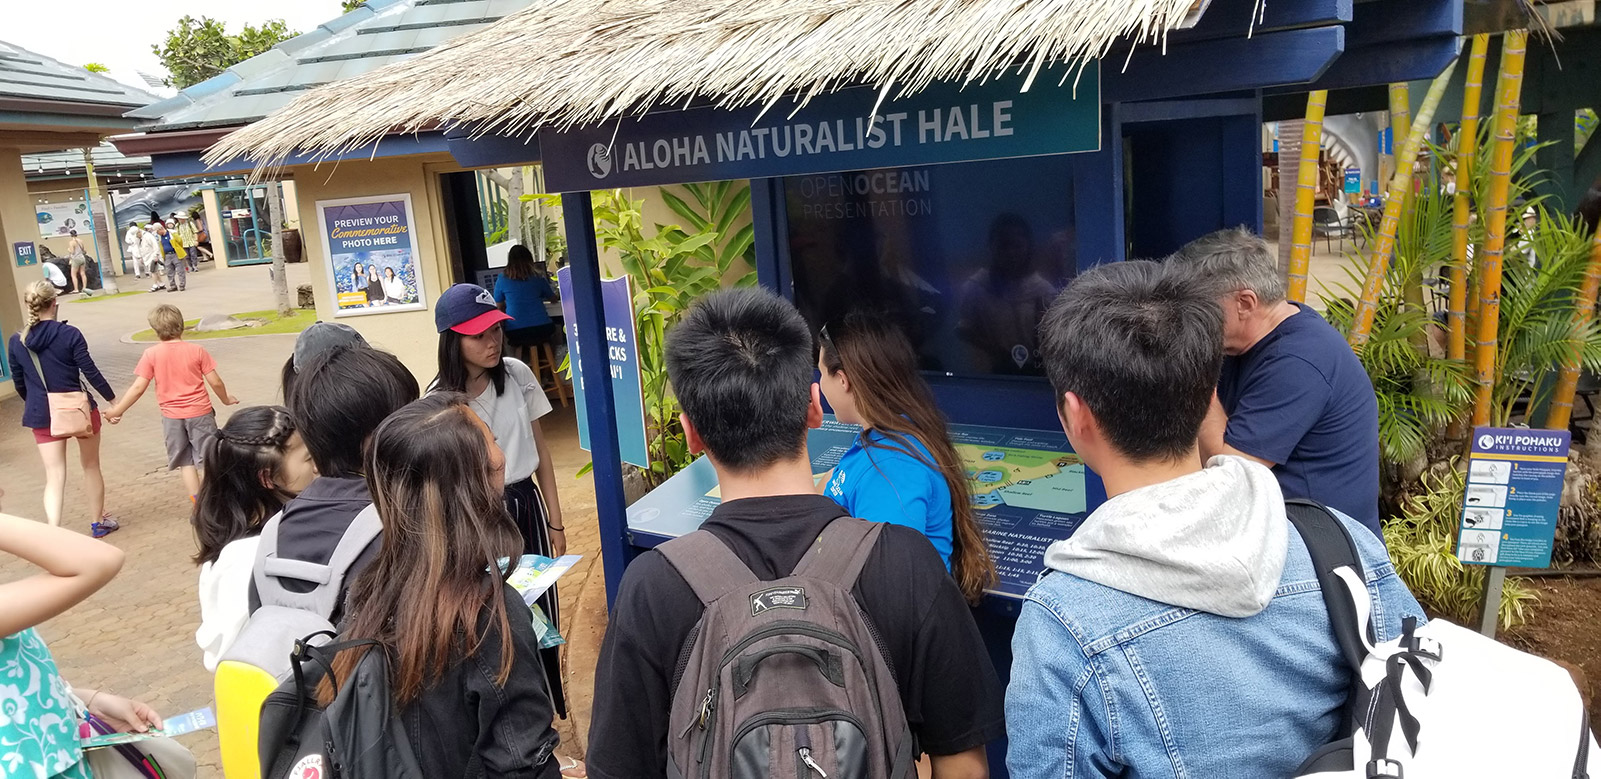 Students at Naturalist Hale